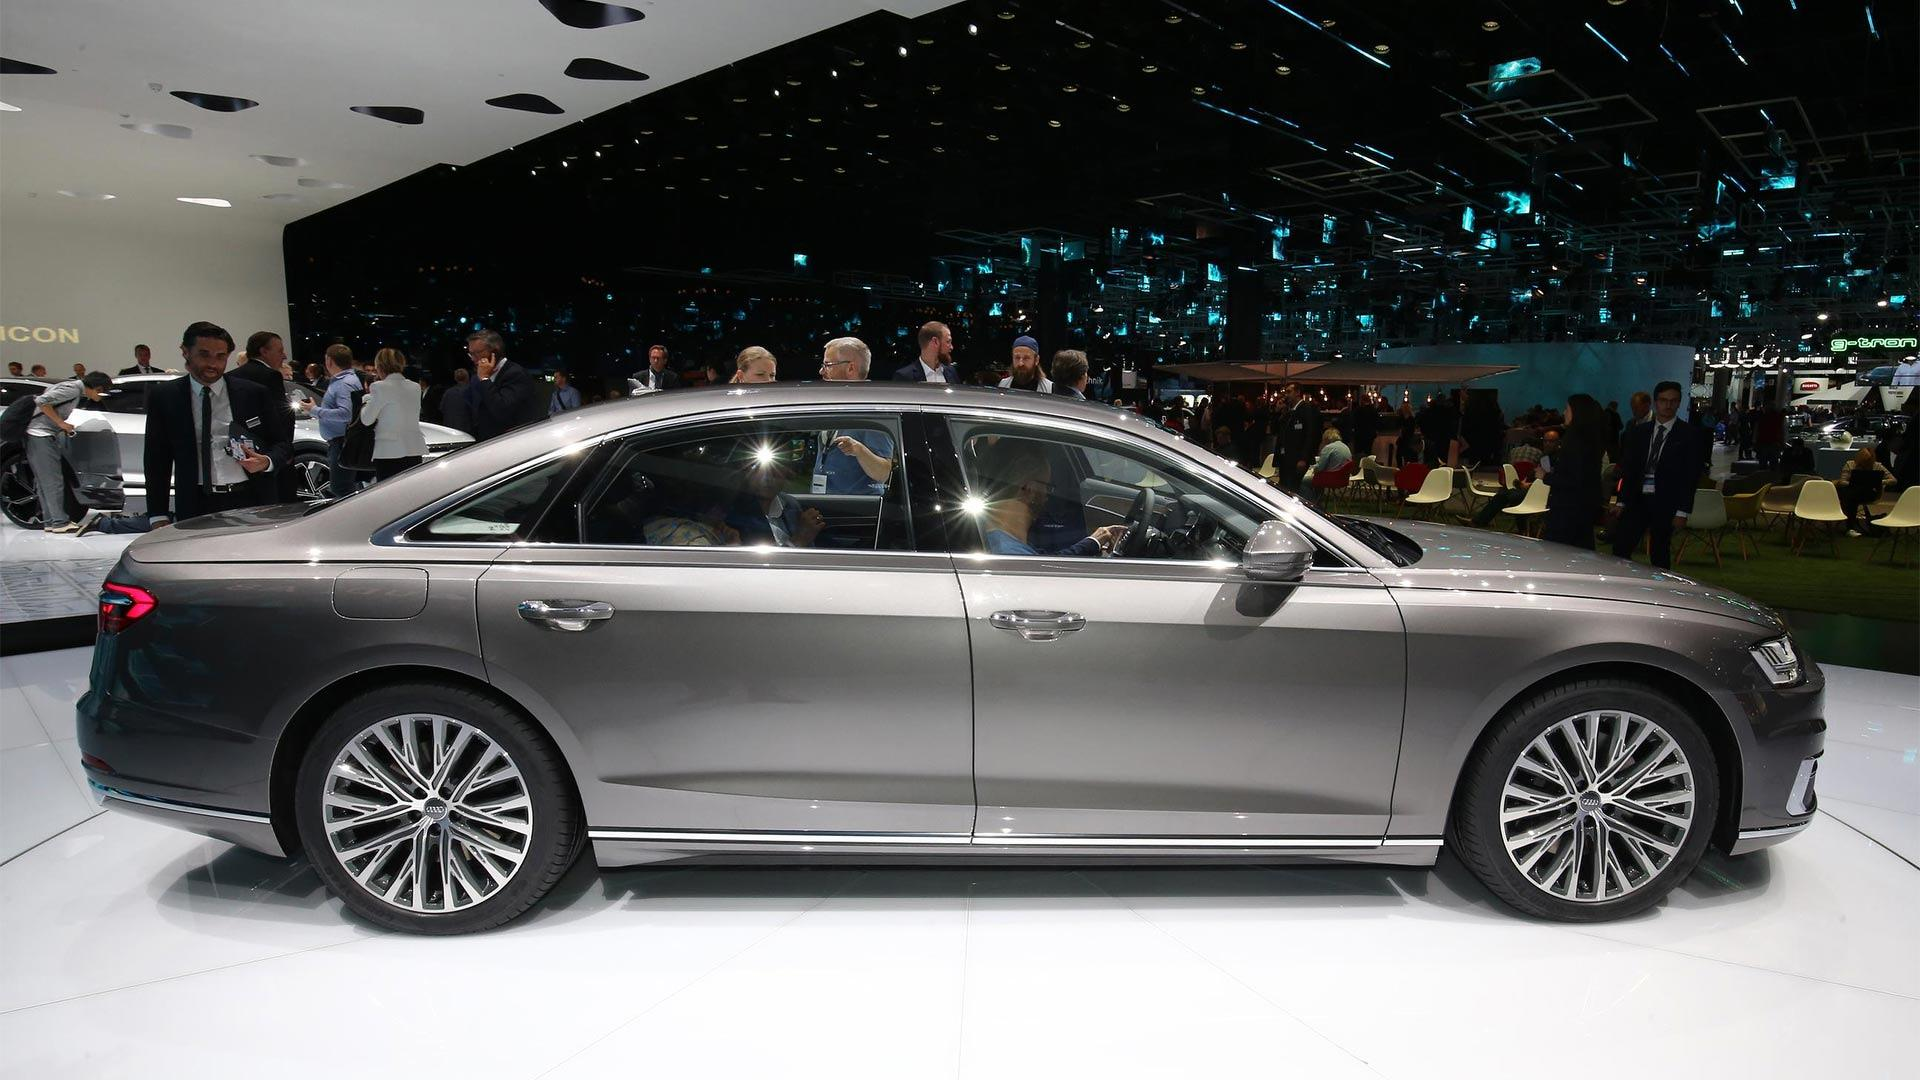 2018 Audi A8 Has Lasers, Foot Massagers, And A Big Price Tag